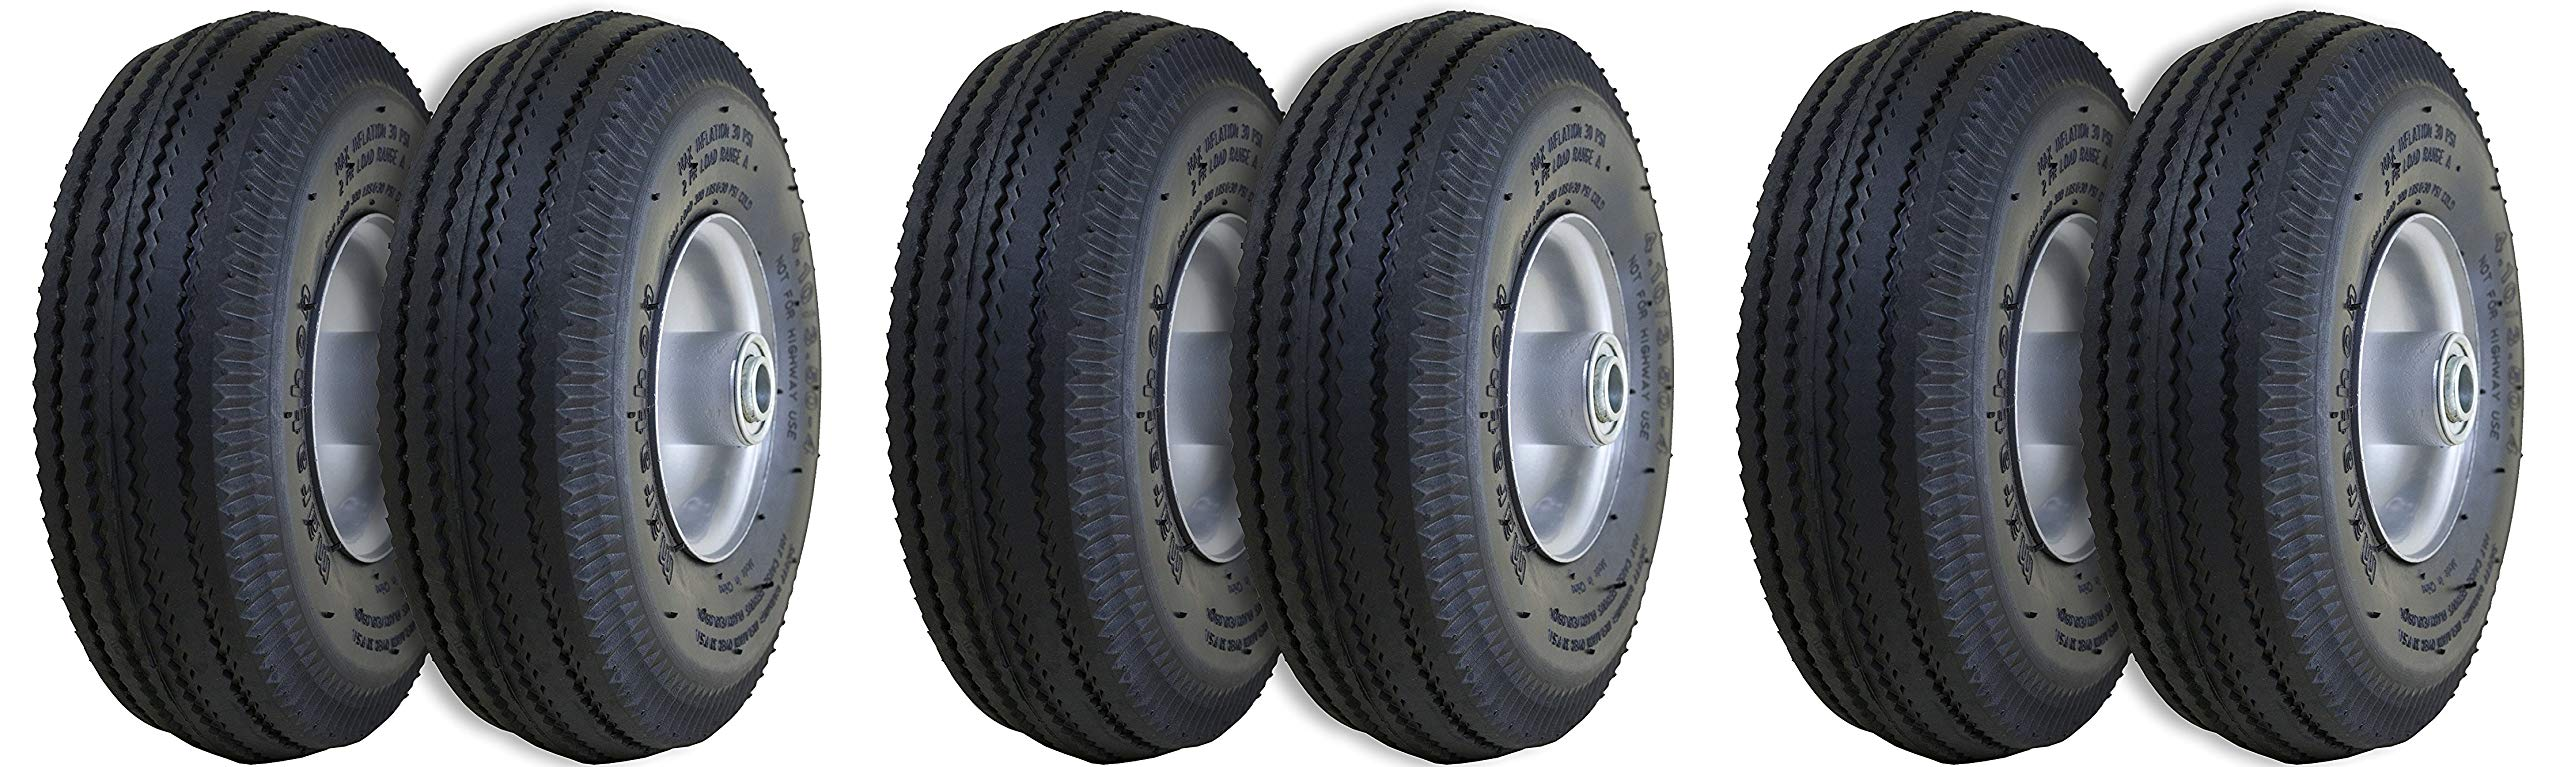 Marathon 4.10/3.50-4'' Pneumatic (Air Filled) Hand Truck/All Purpose Utility Tires on Wheels, 2.25'' Offset Hub, 5/8'' Bearings (3 X Pack of 2) by Marathon Industries